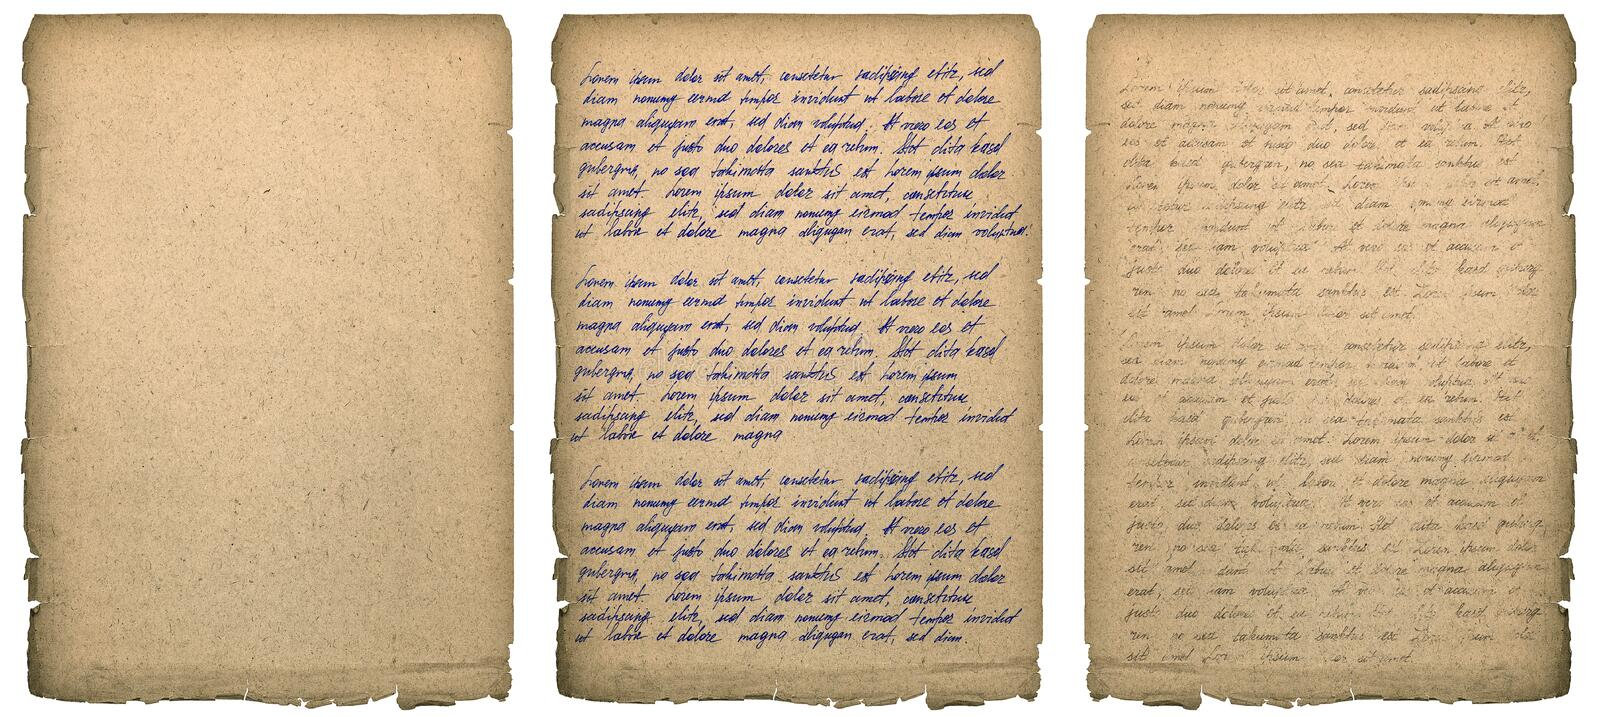 Old book page with worn edges Handwriting Paper texture background. Old book page with worn edges isolated on white. Paper texture background. Handwritten letter royalty free stock images